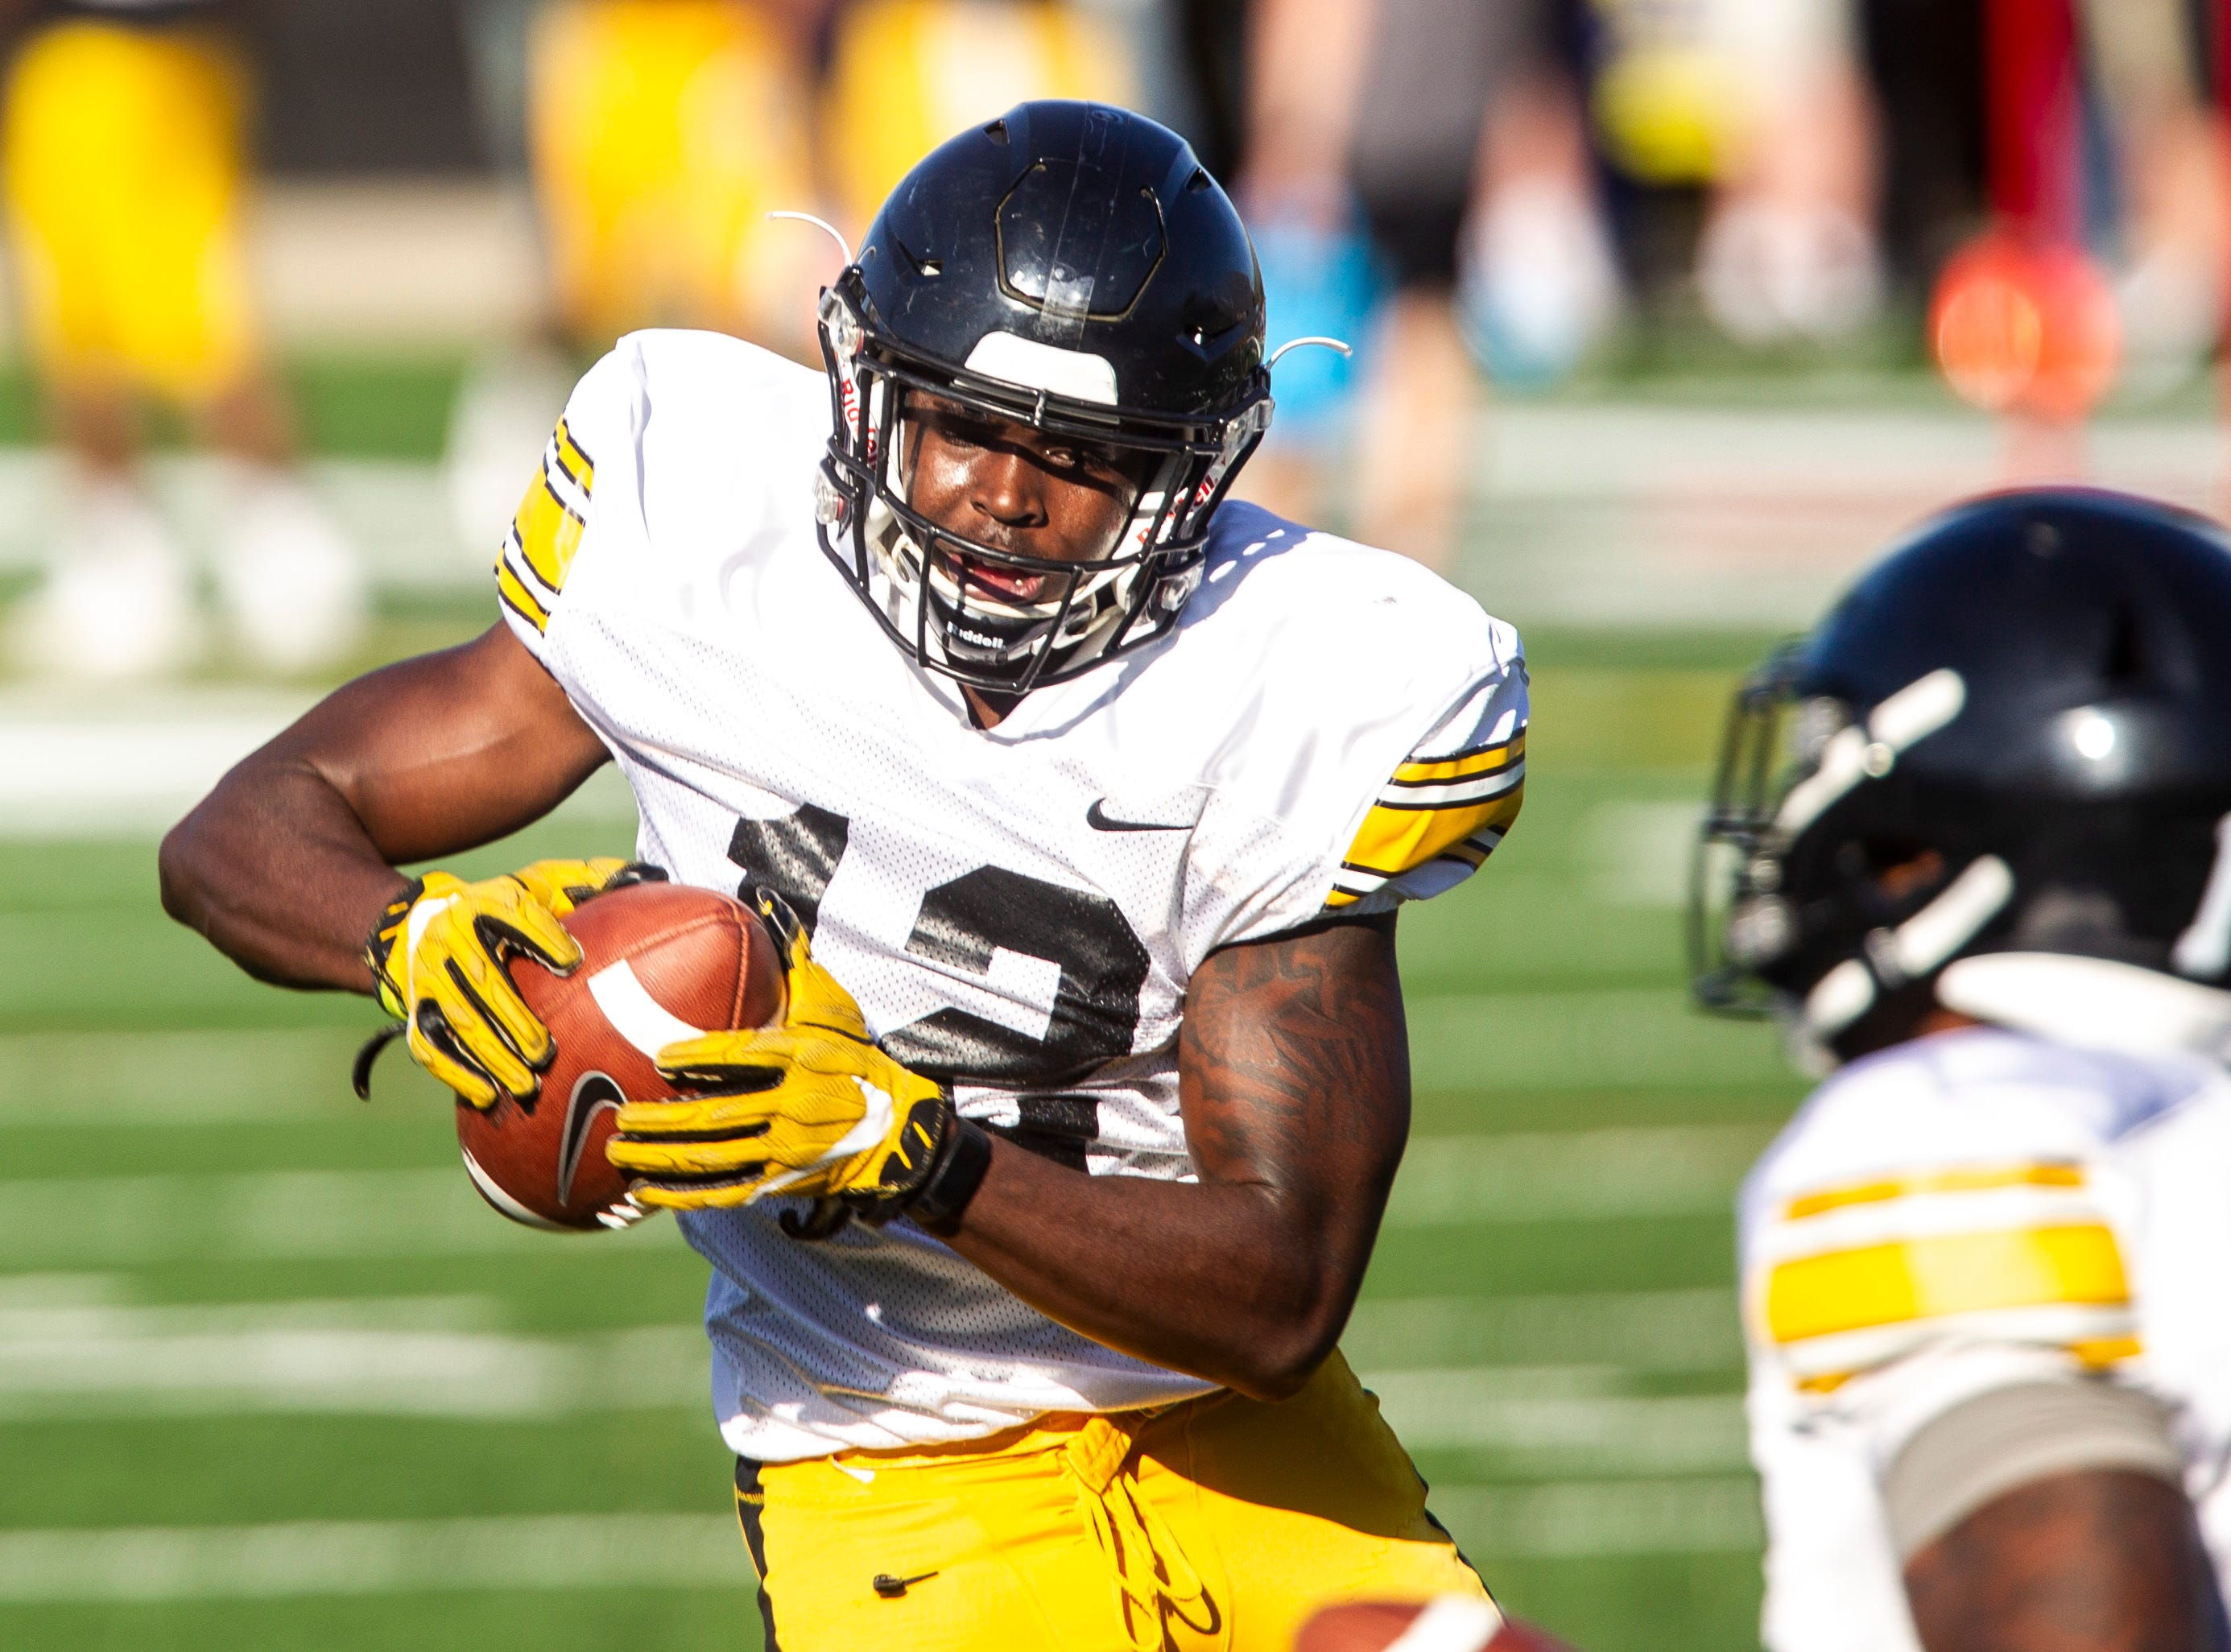 Iowa defensive back D.J. Johnson (12) catches a pass while running a drill during the final spring football practice, Friday, April 26, 2019, at the University of Iowa outdoor practice facility in Iowa City, Iowa.